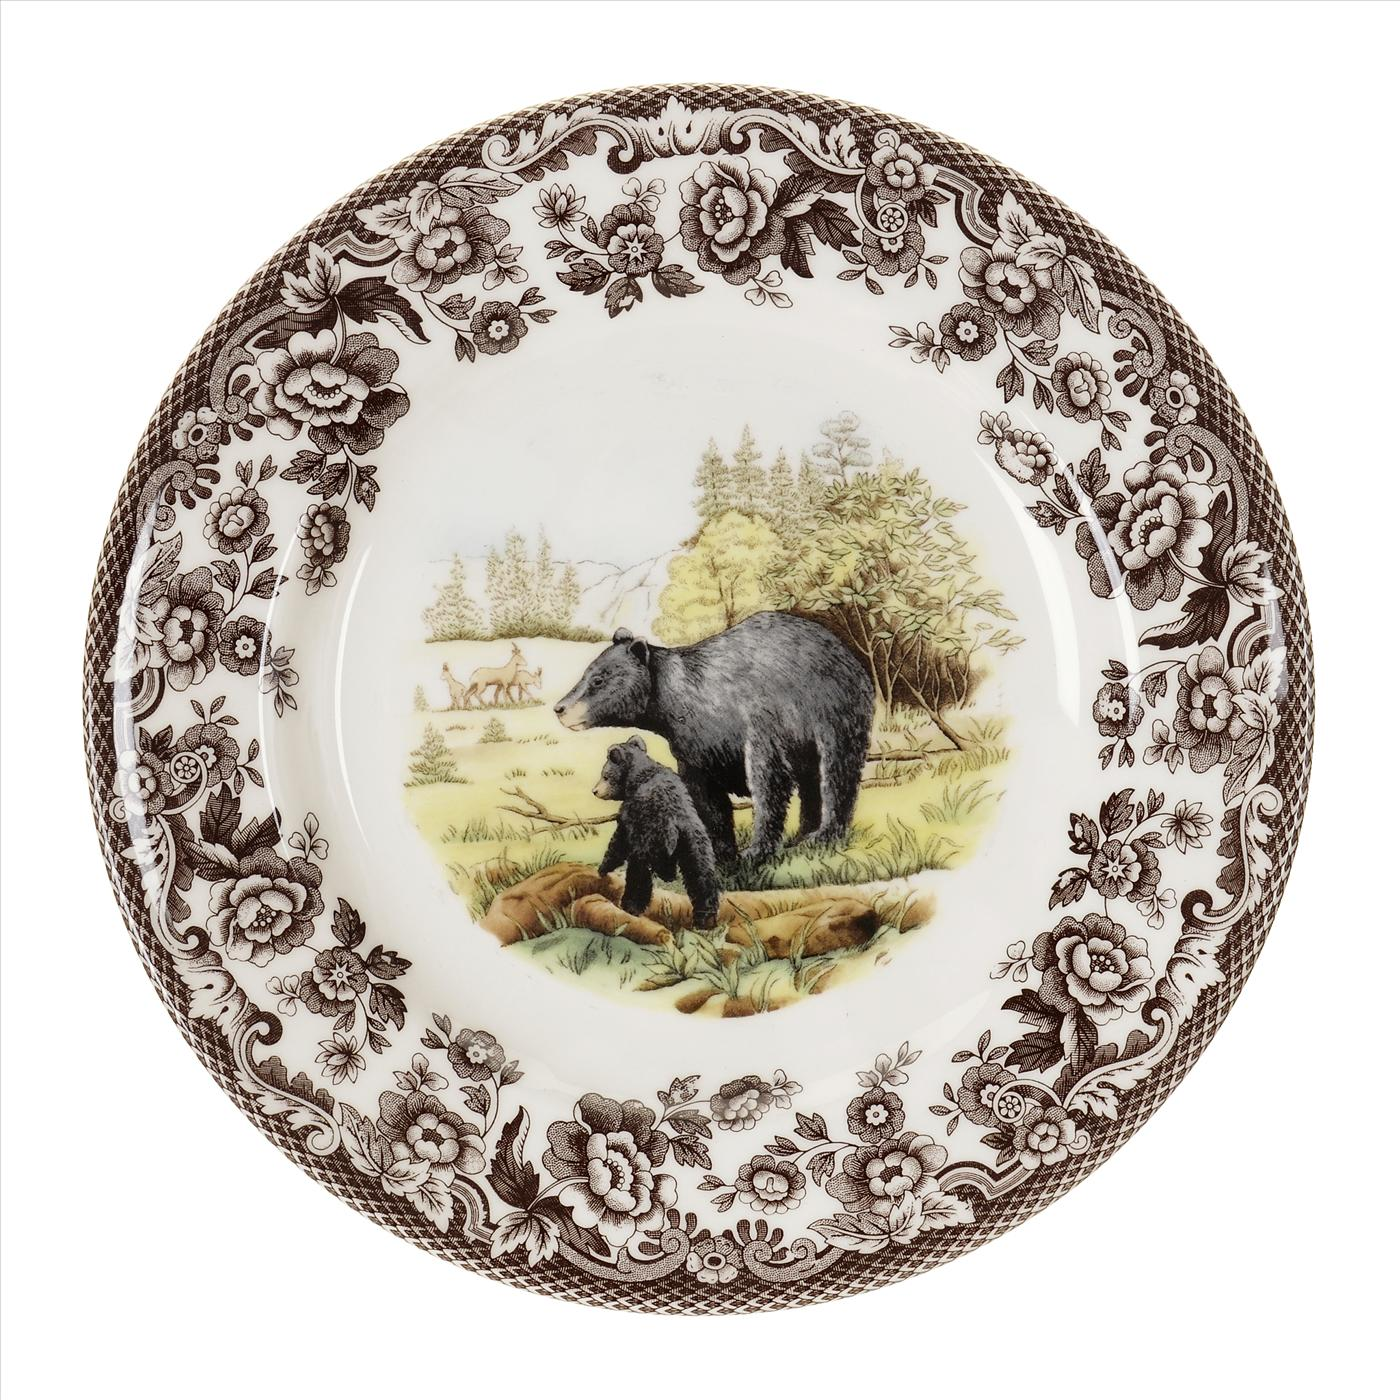 Spode Woodland Salad Plate 8 Inch (Black Bear) image number 0